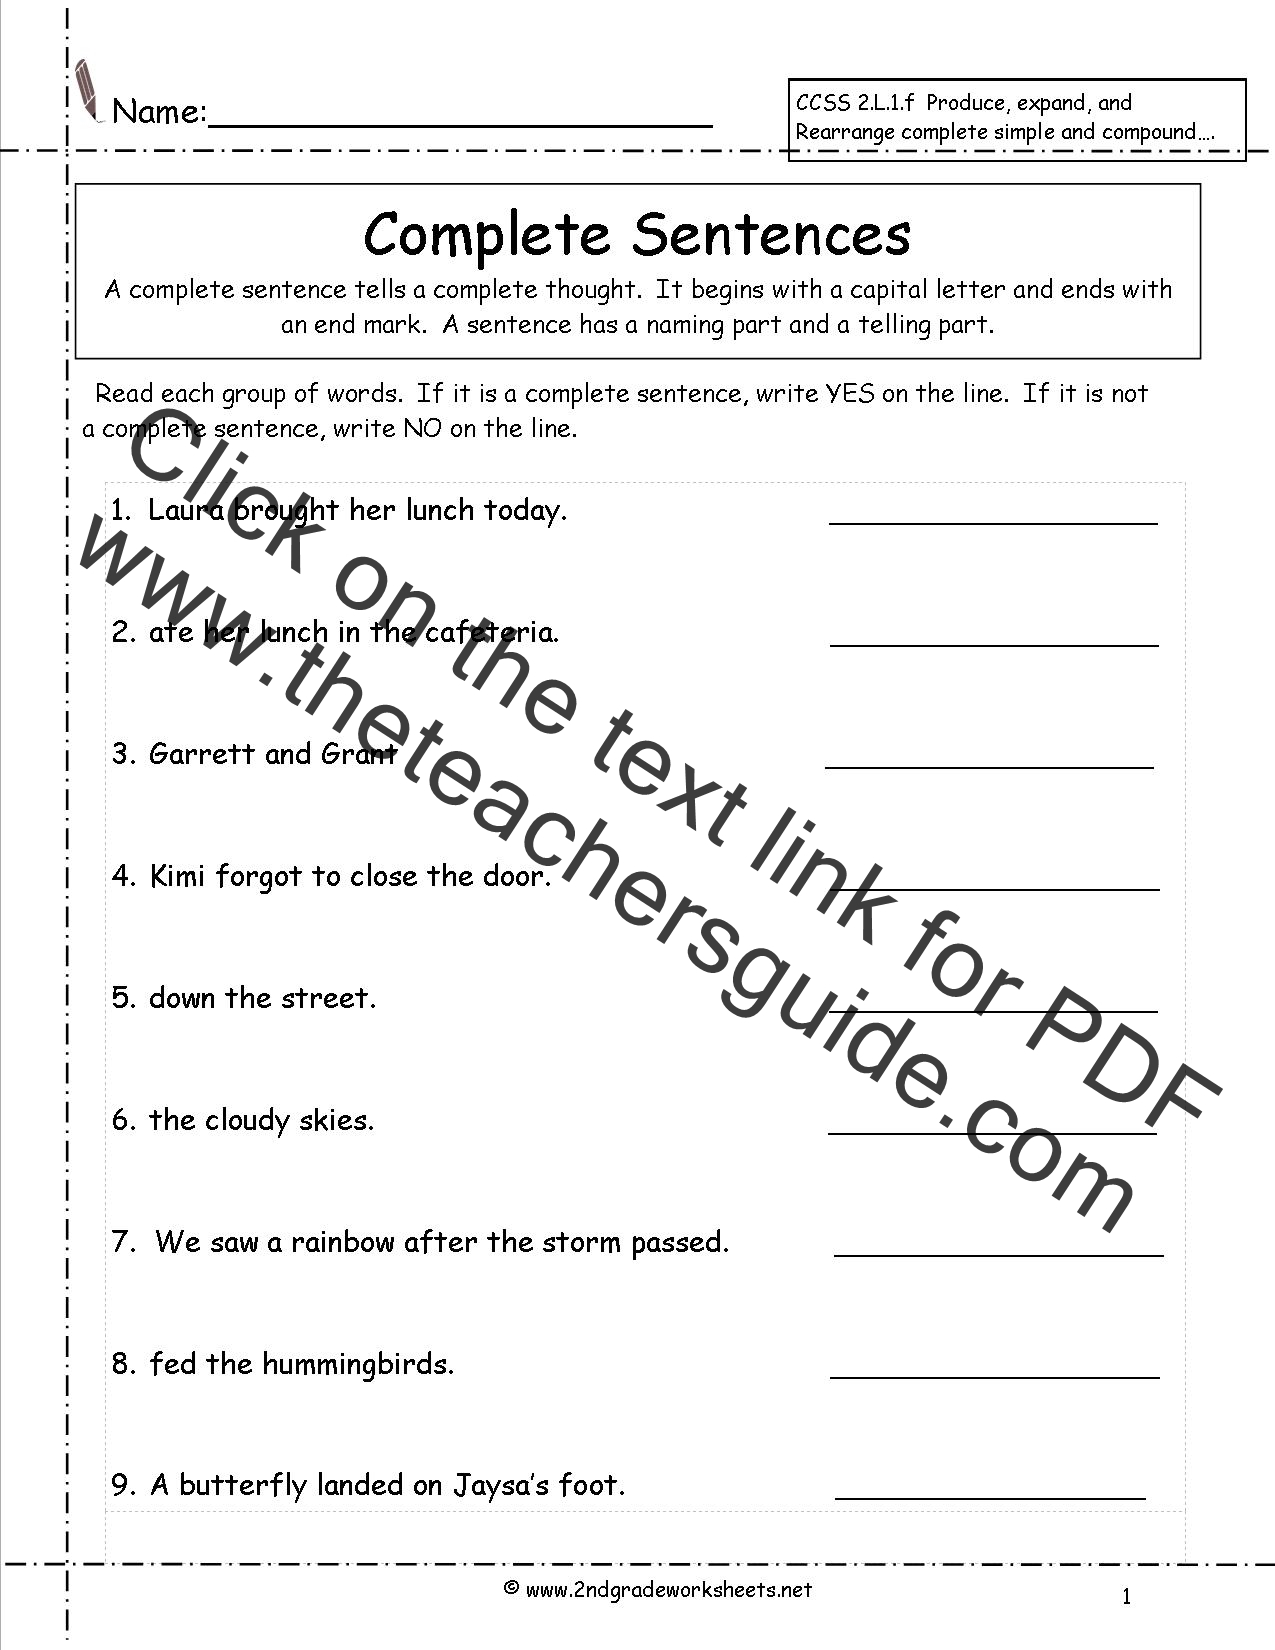 Printables Sentence Corrections Worksheets second grade sentences worksheets ccss 2 l 1 f complete worksheets